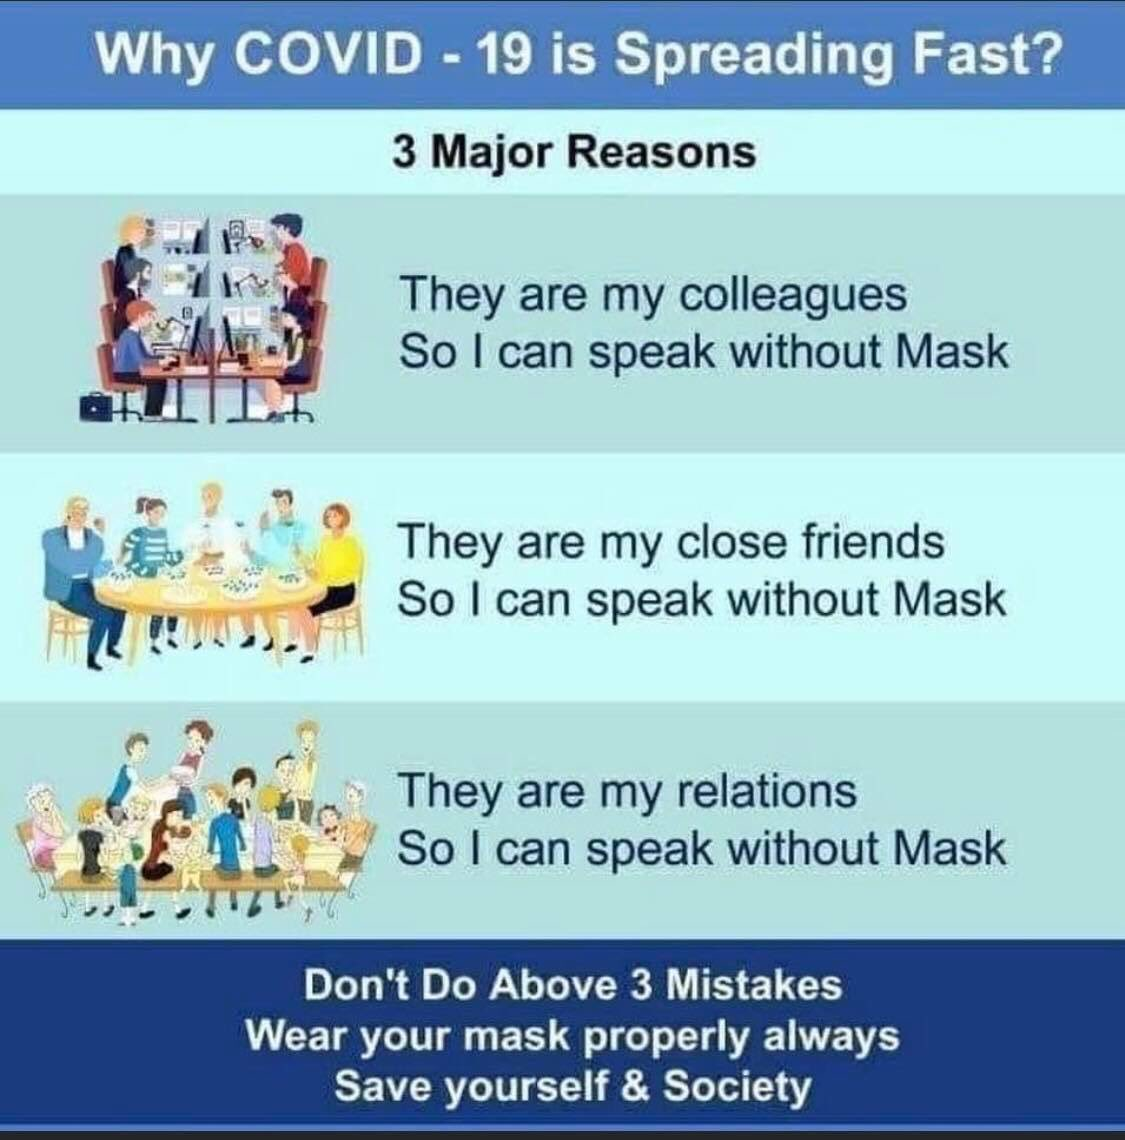 Never let your guard down. Always #wearmask.  #COVID19 #Pilipinas #ineptgovernment #riseofczars #nakakaaczar #kangkunganpic.twitter.com/ZKLm5aUP76